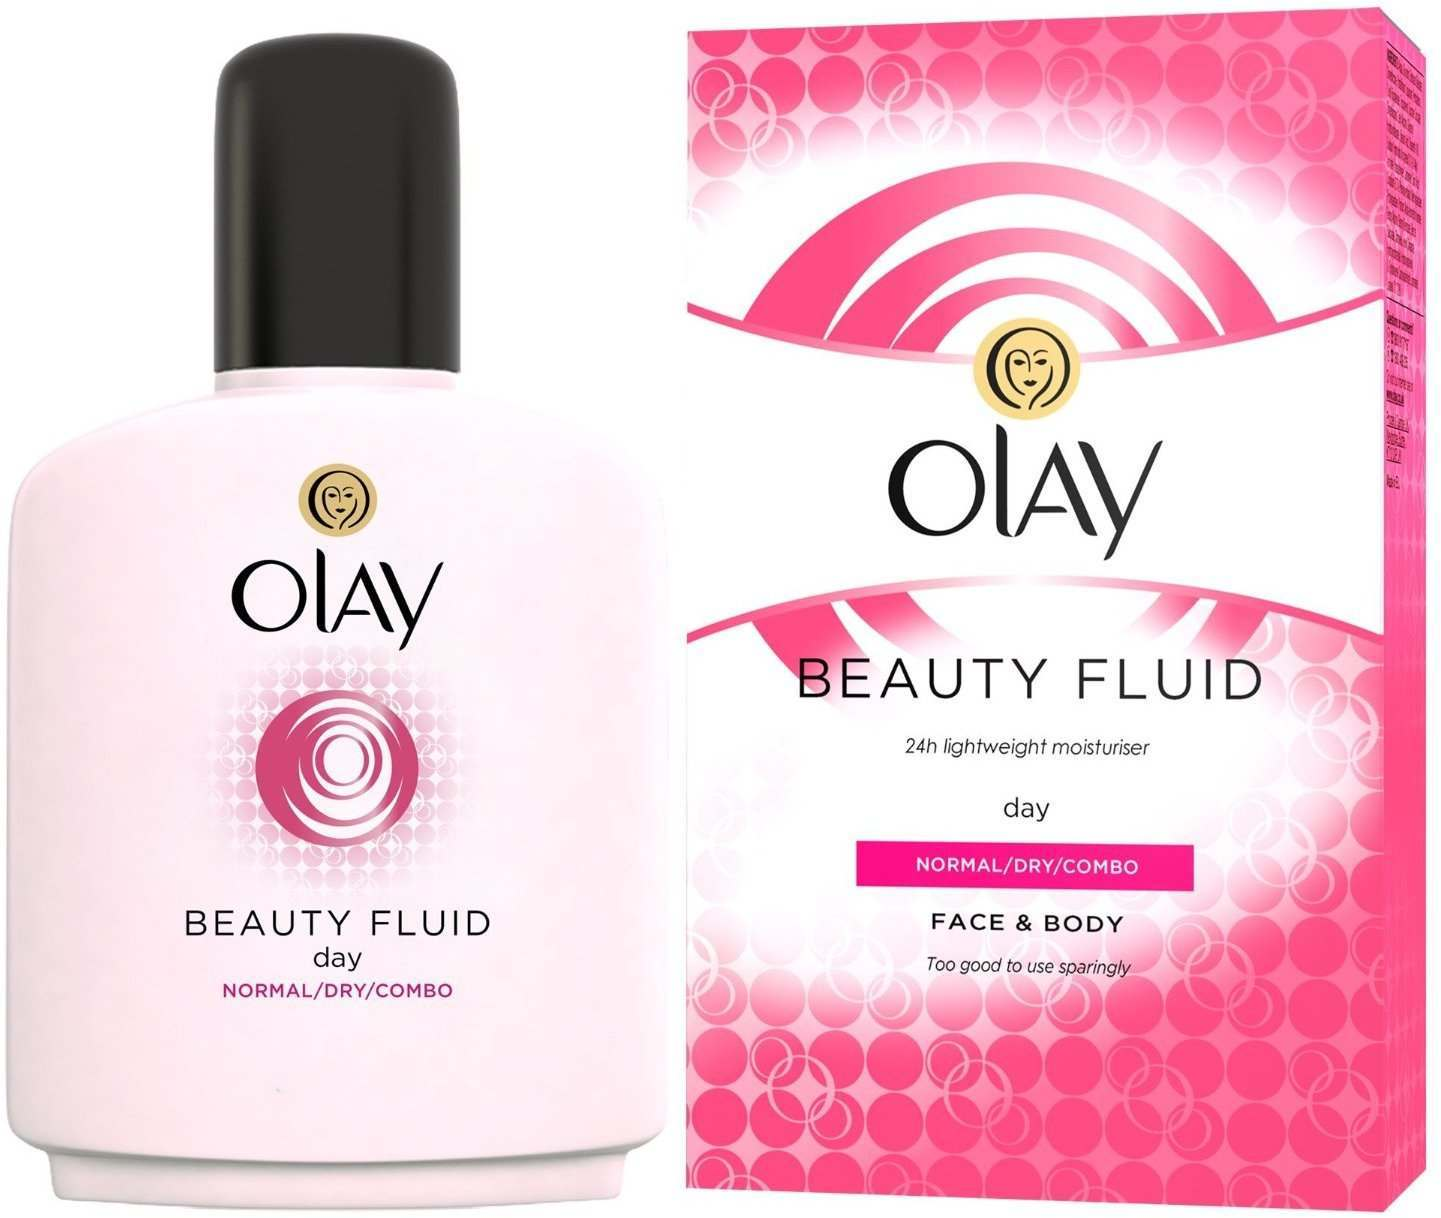 Olay 81507176 Beauty Fluid 100ml Moisturiser